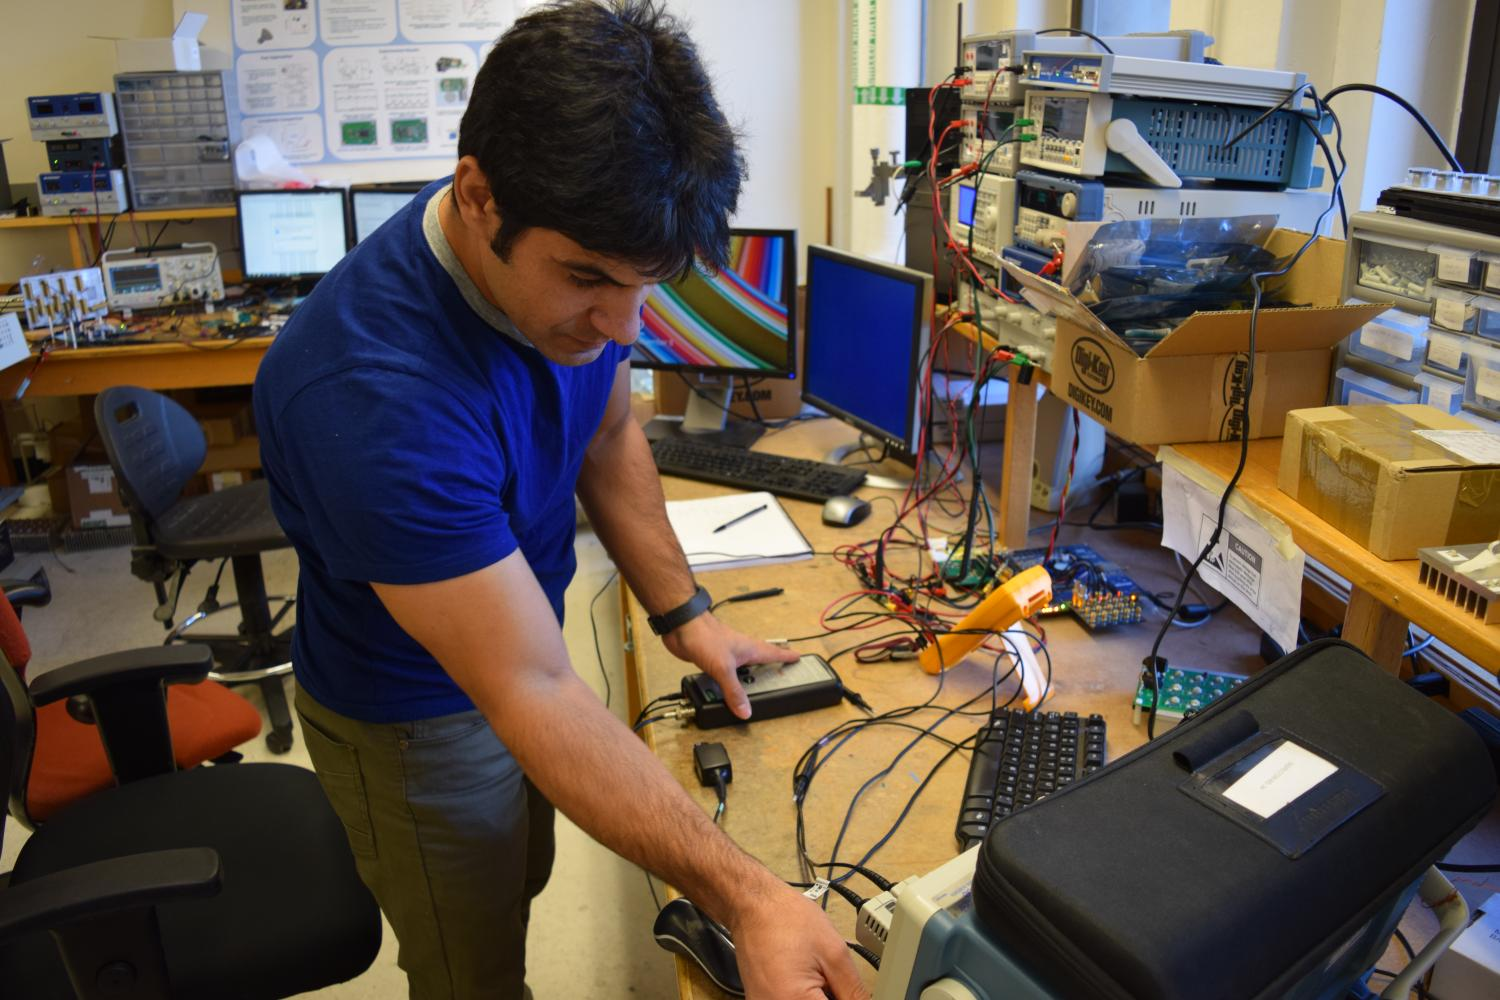 A student adjusts an oscilliscope on his lab bench in the CoPEC lab